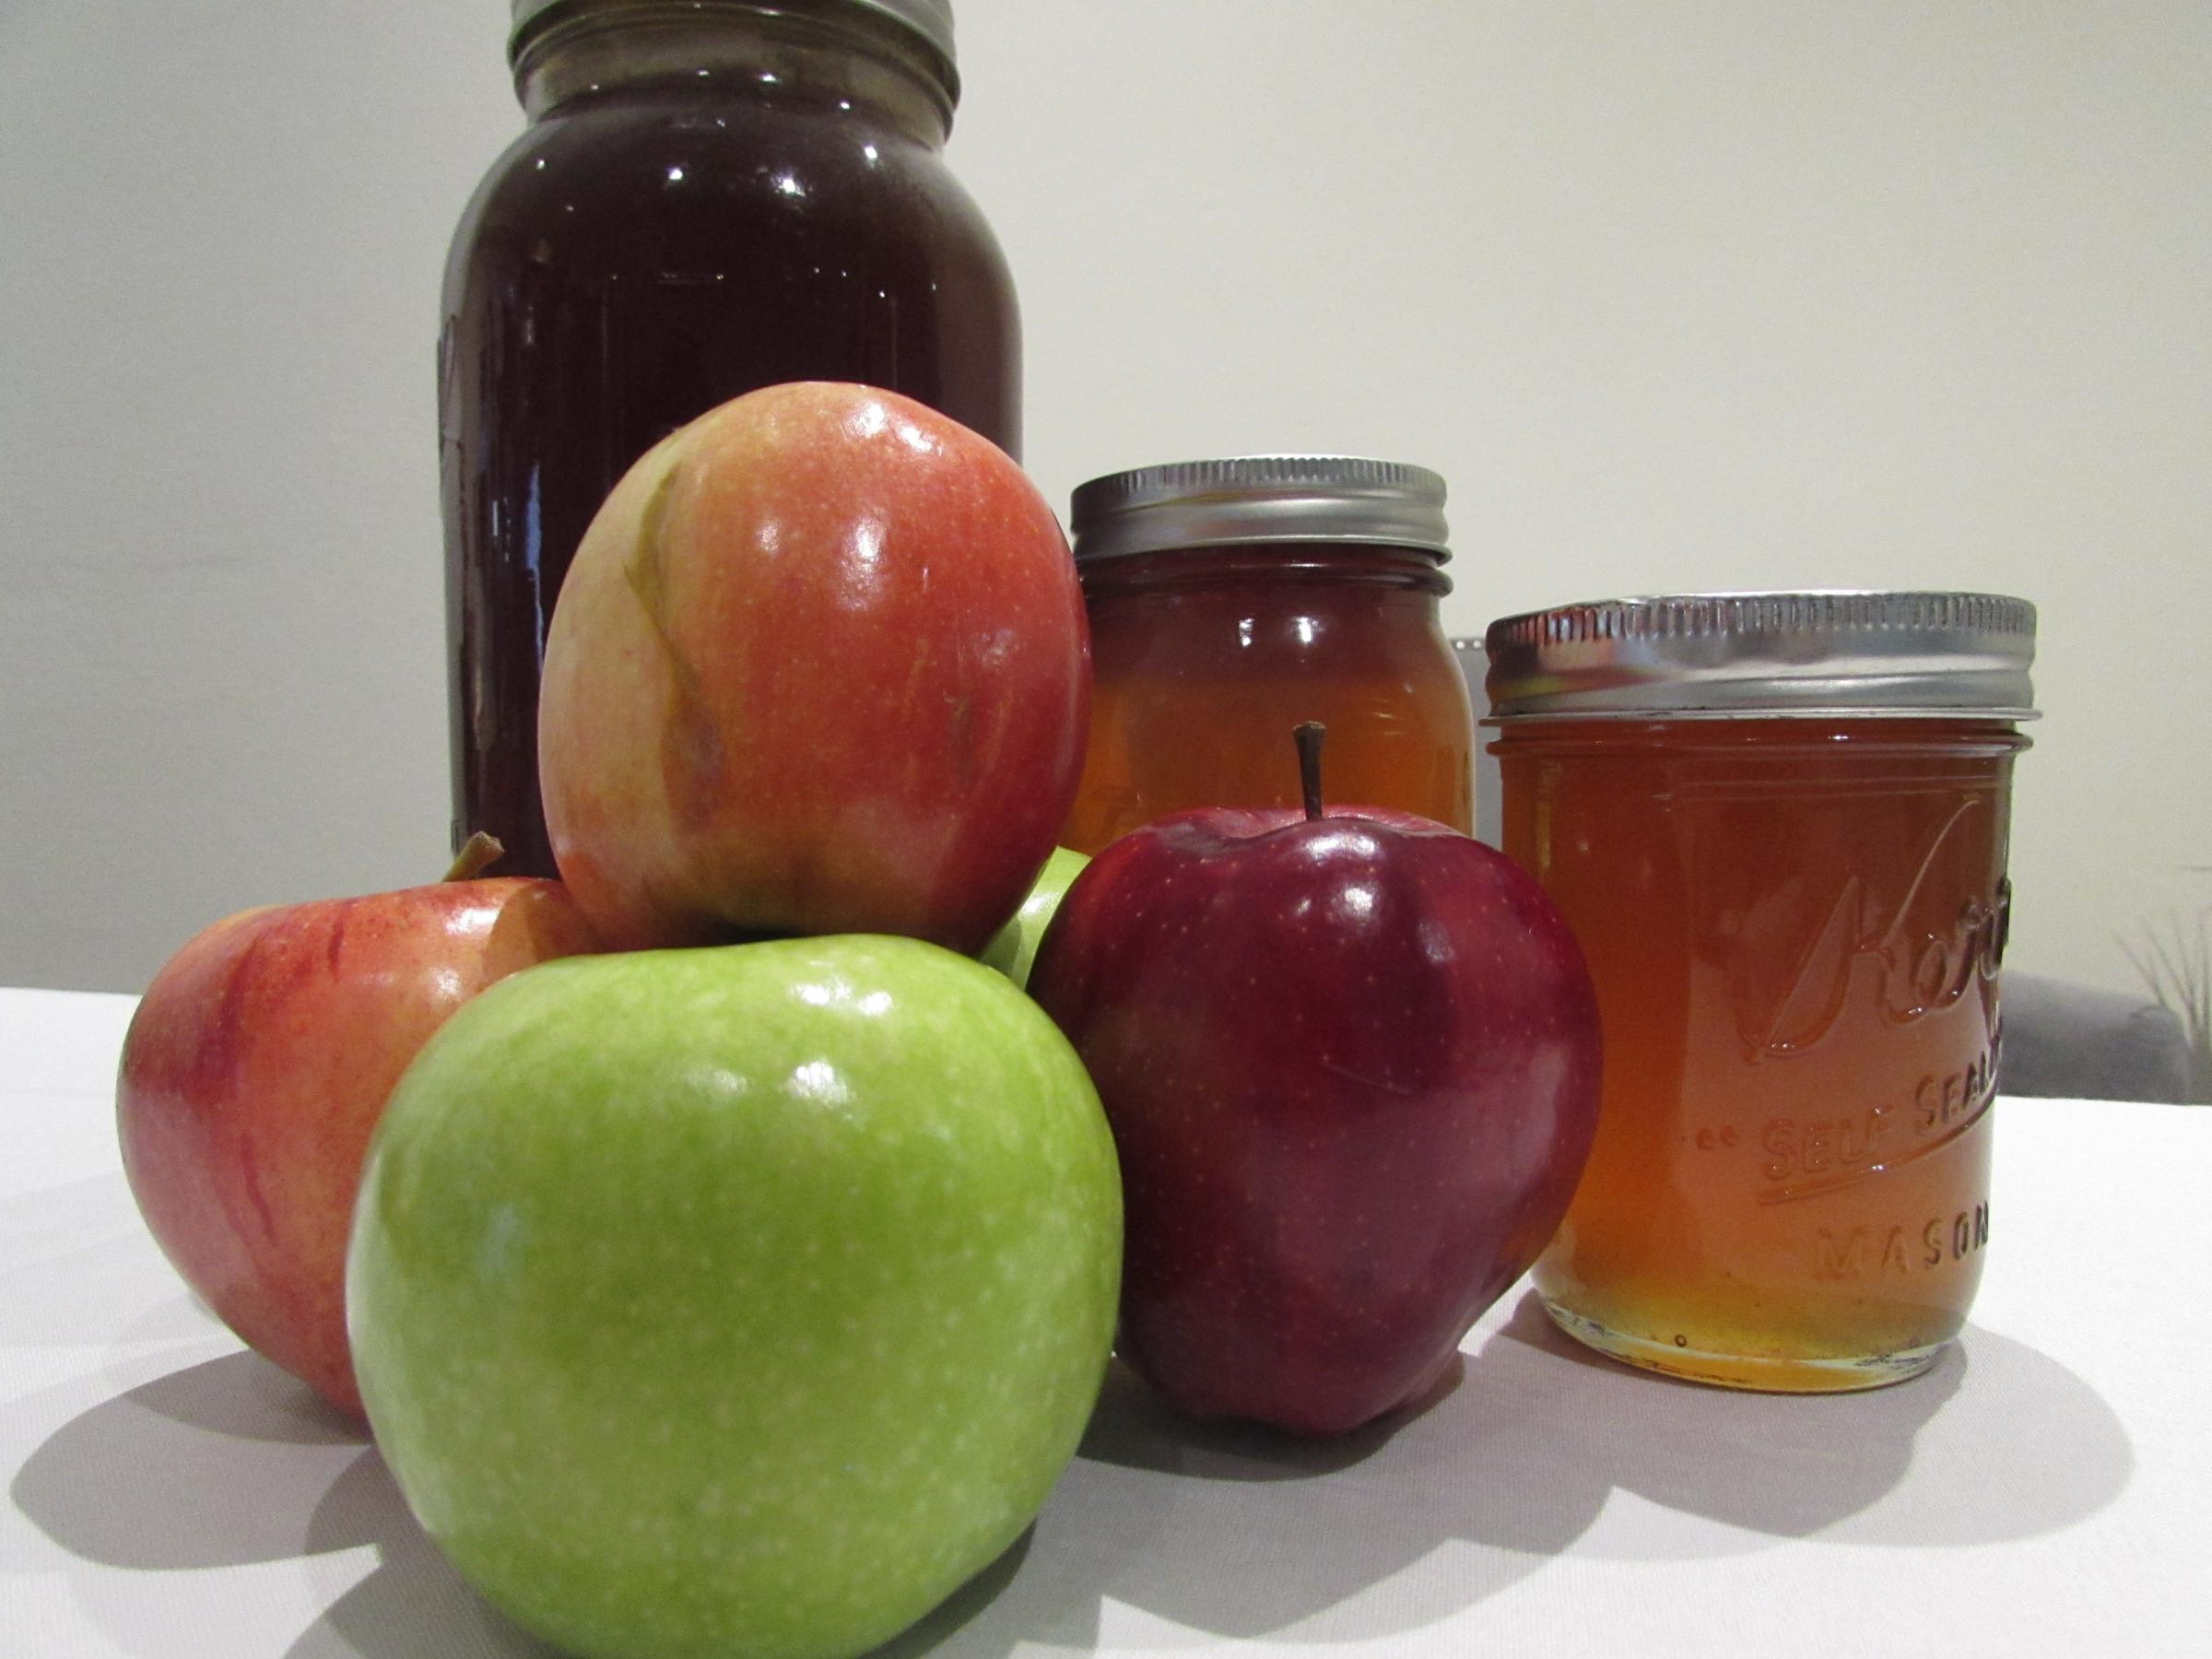 Apples and honey are symbols of haShanah